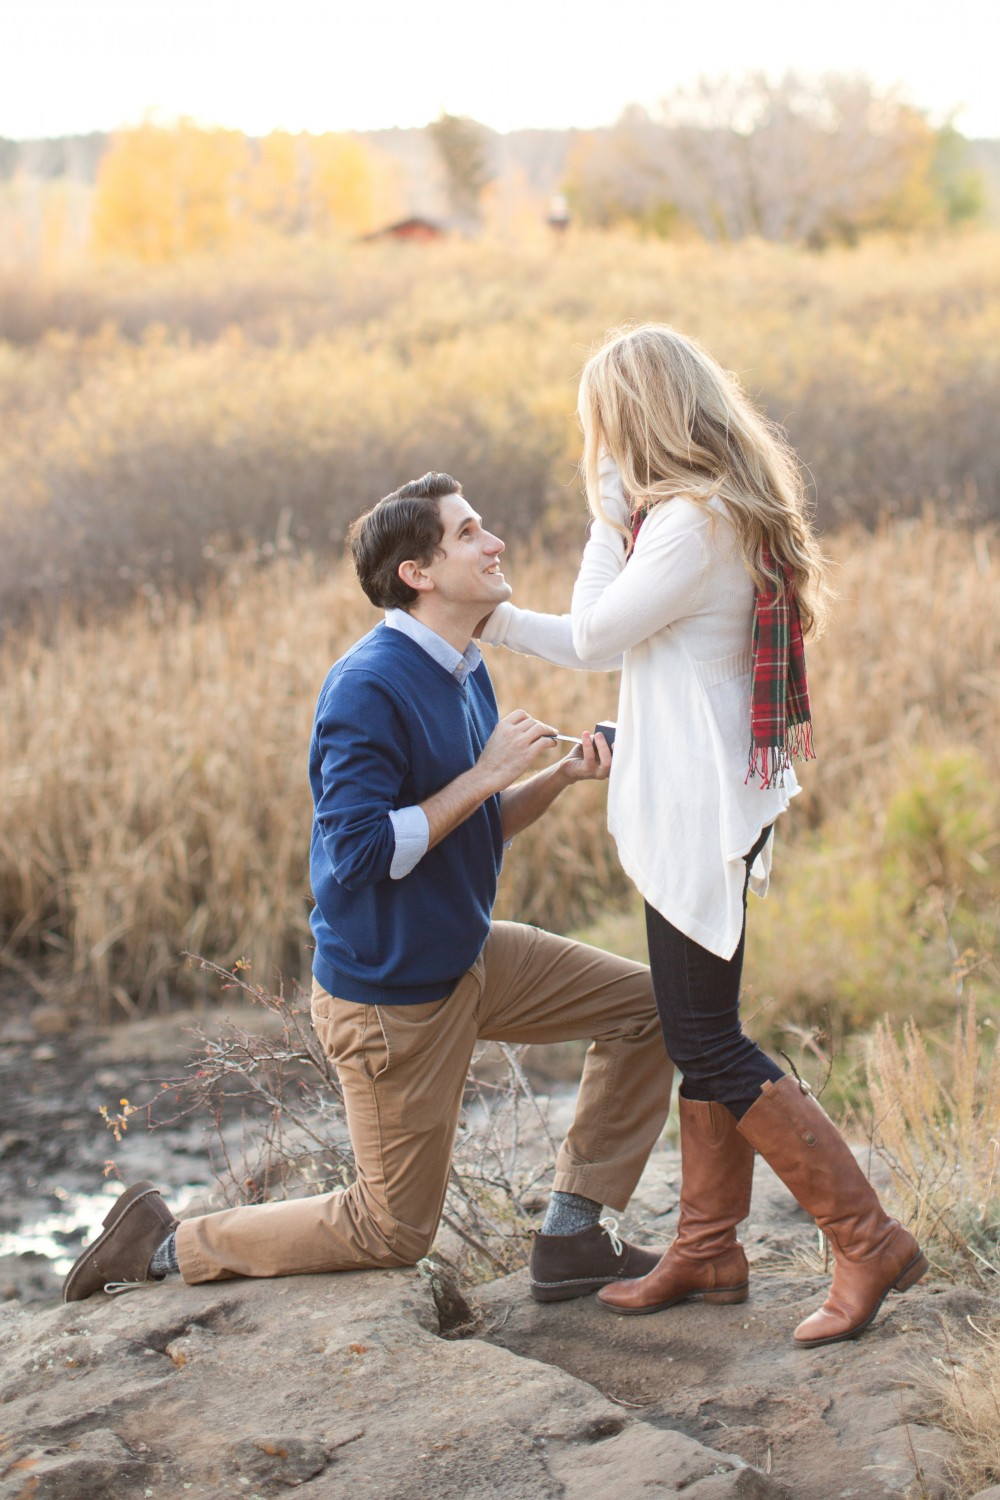 Image 4 of Surprise Proposal in the Woods